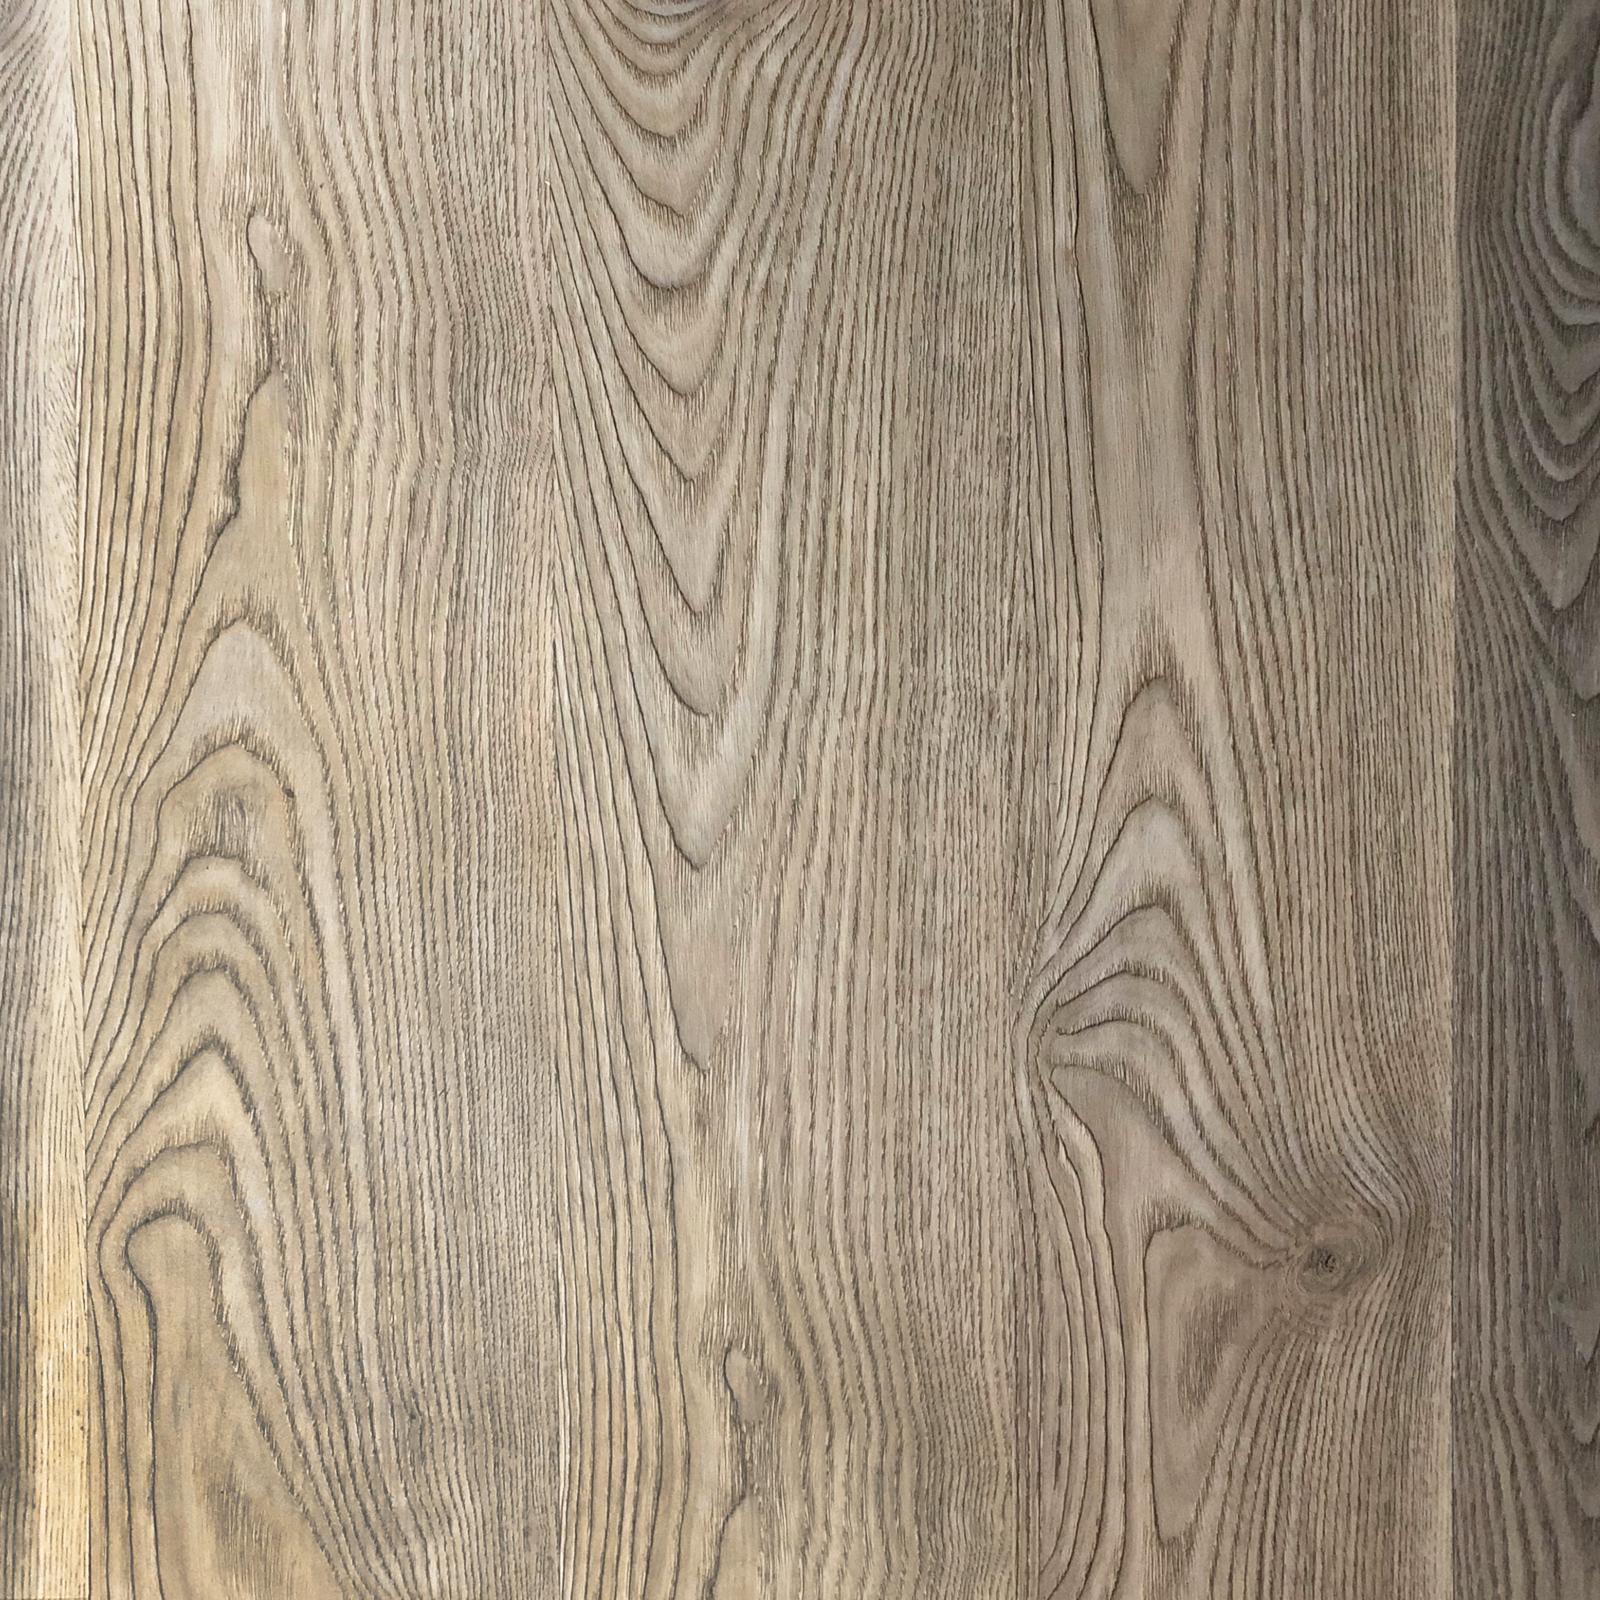 LUSSO 100% waterproof wood look hot sale spc flooring